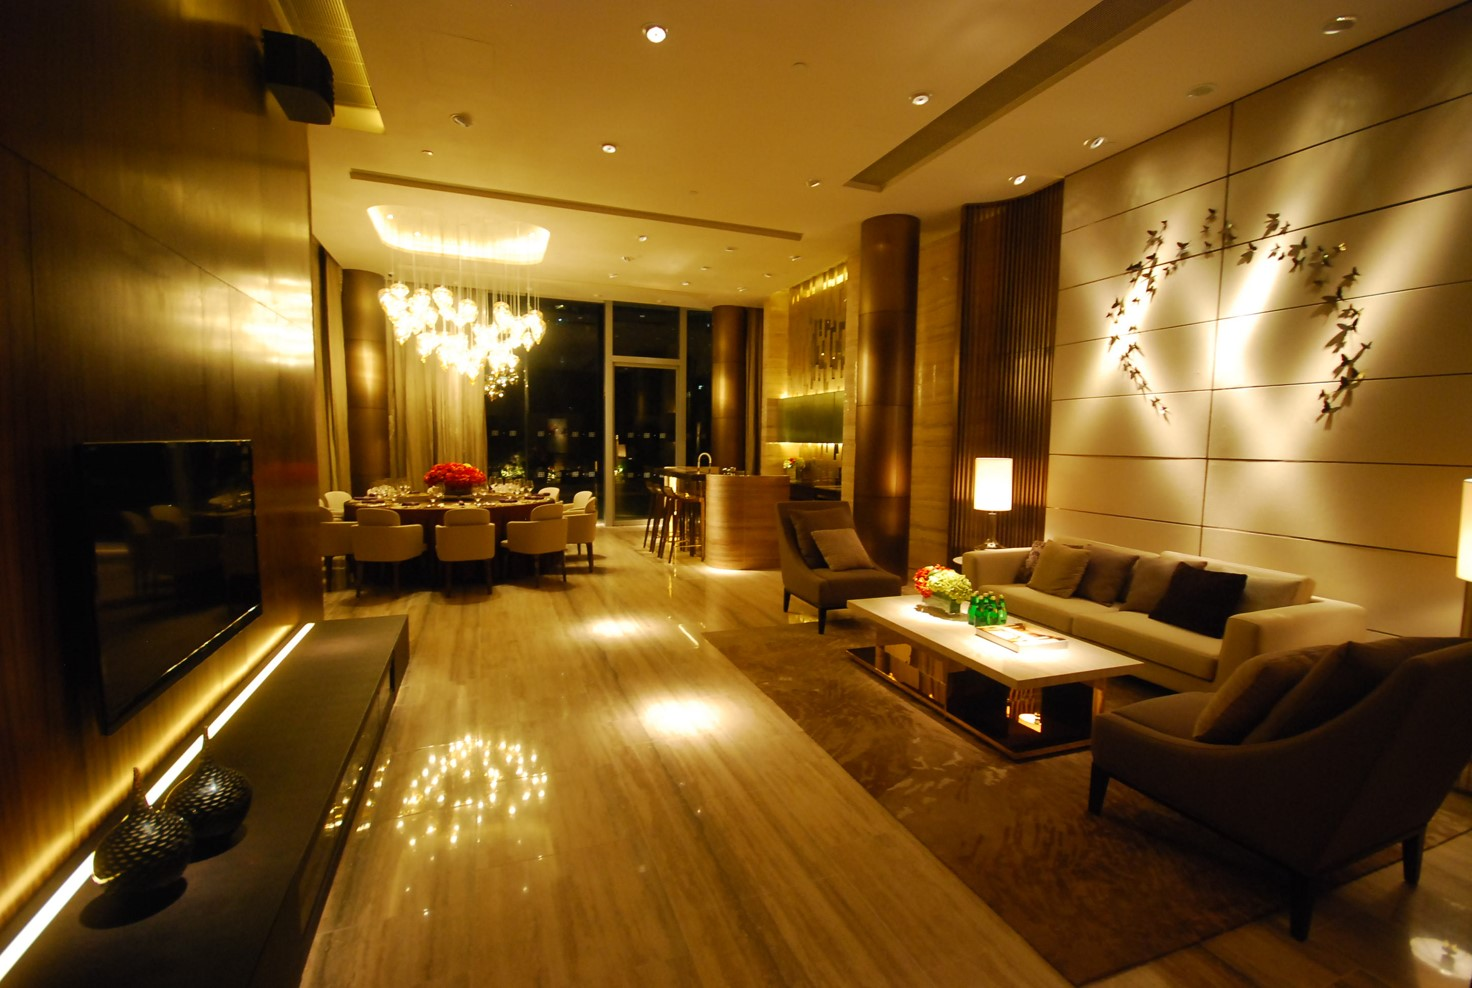 Club House, Residence 88, Hong Kong 5